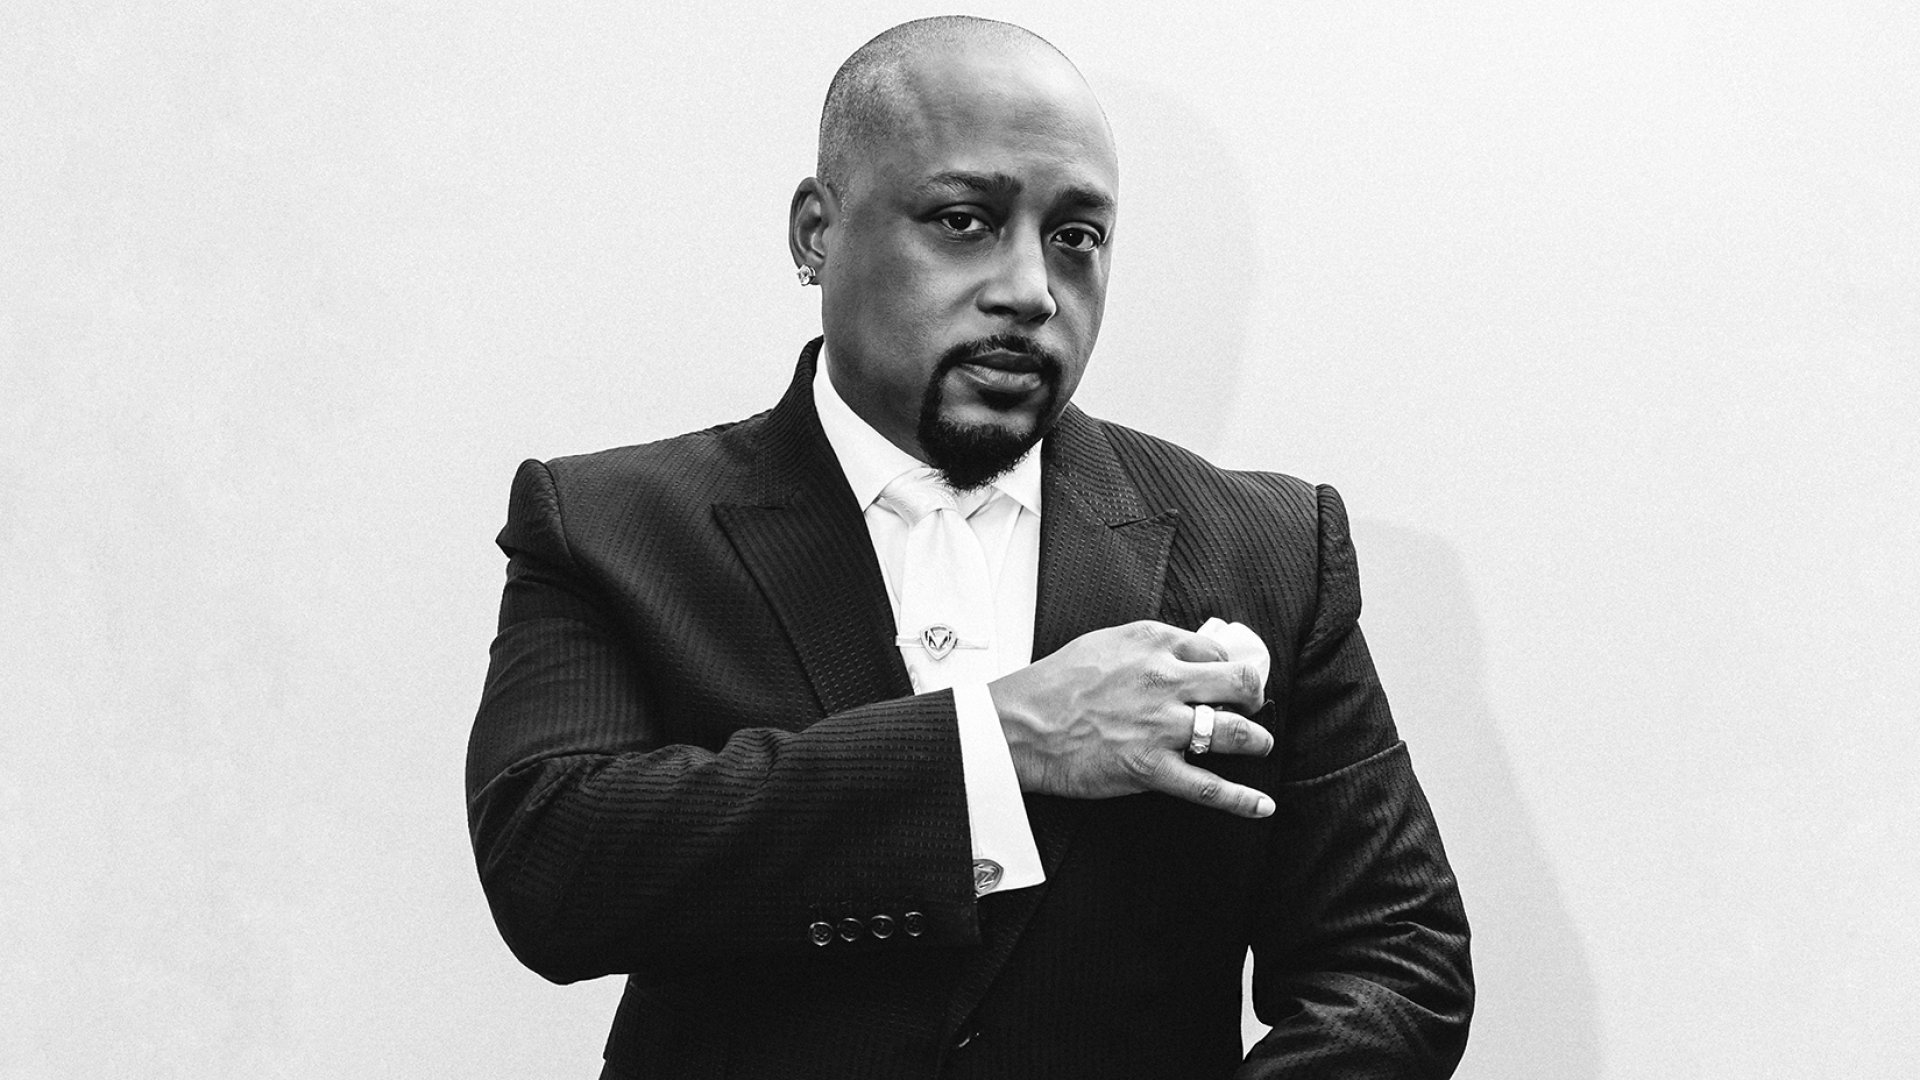 """I didn't want everyone to misunderstand and think I was dying,"" says Daymond John, who recently went public that he'd overcome cancer last year."